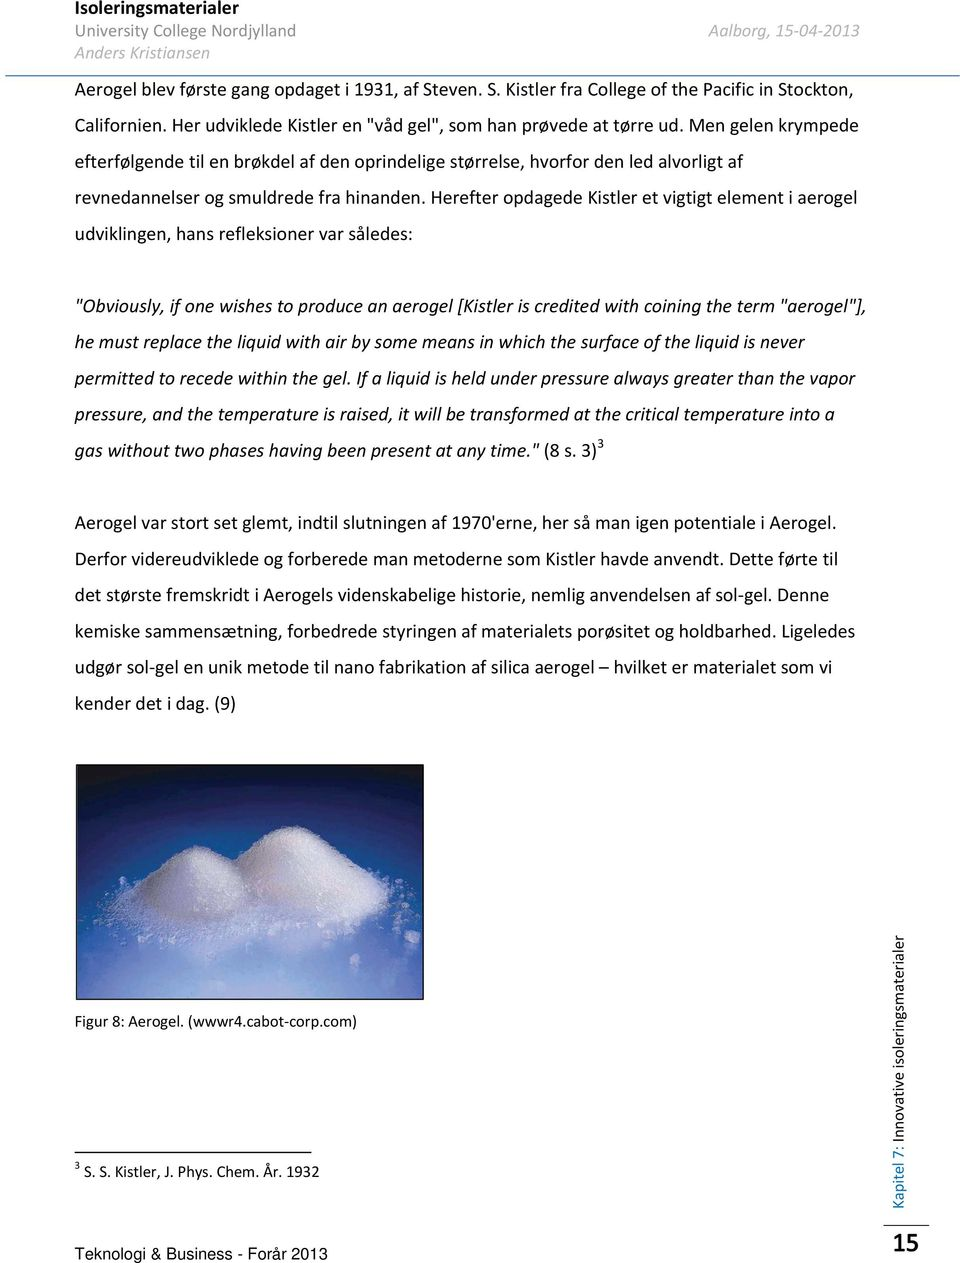 "Herefter opdagede Kistler et vigtigt element i aerogel udviklingen, hans refleksioner var således: ""Obviously, if one wishes to produce an aerogel [Kistler is credited with coining the term"